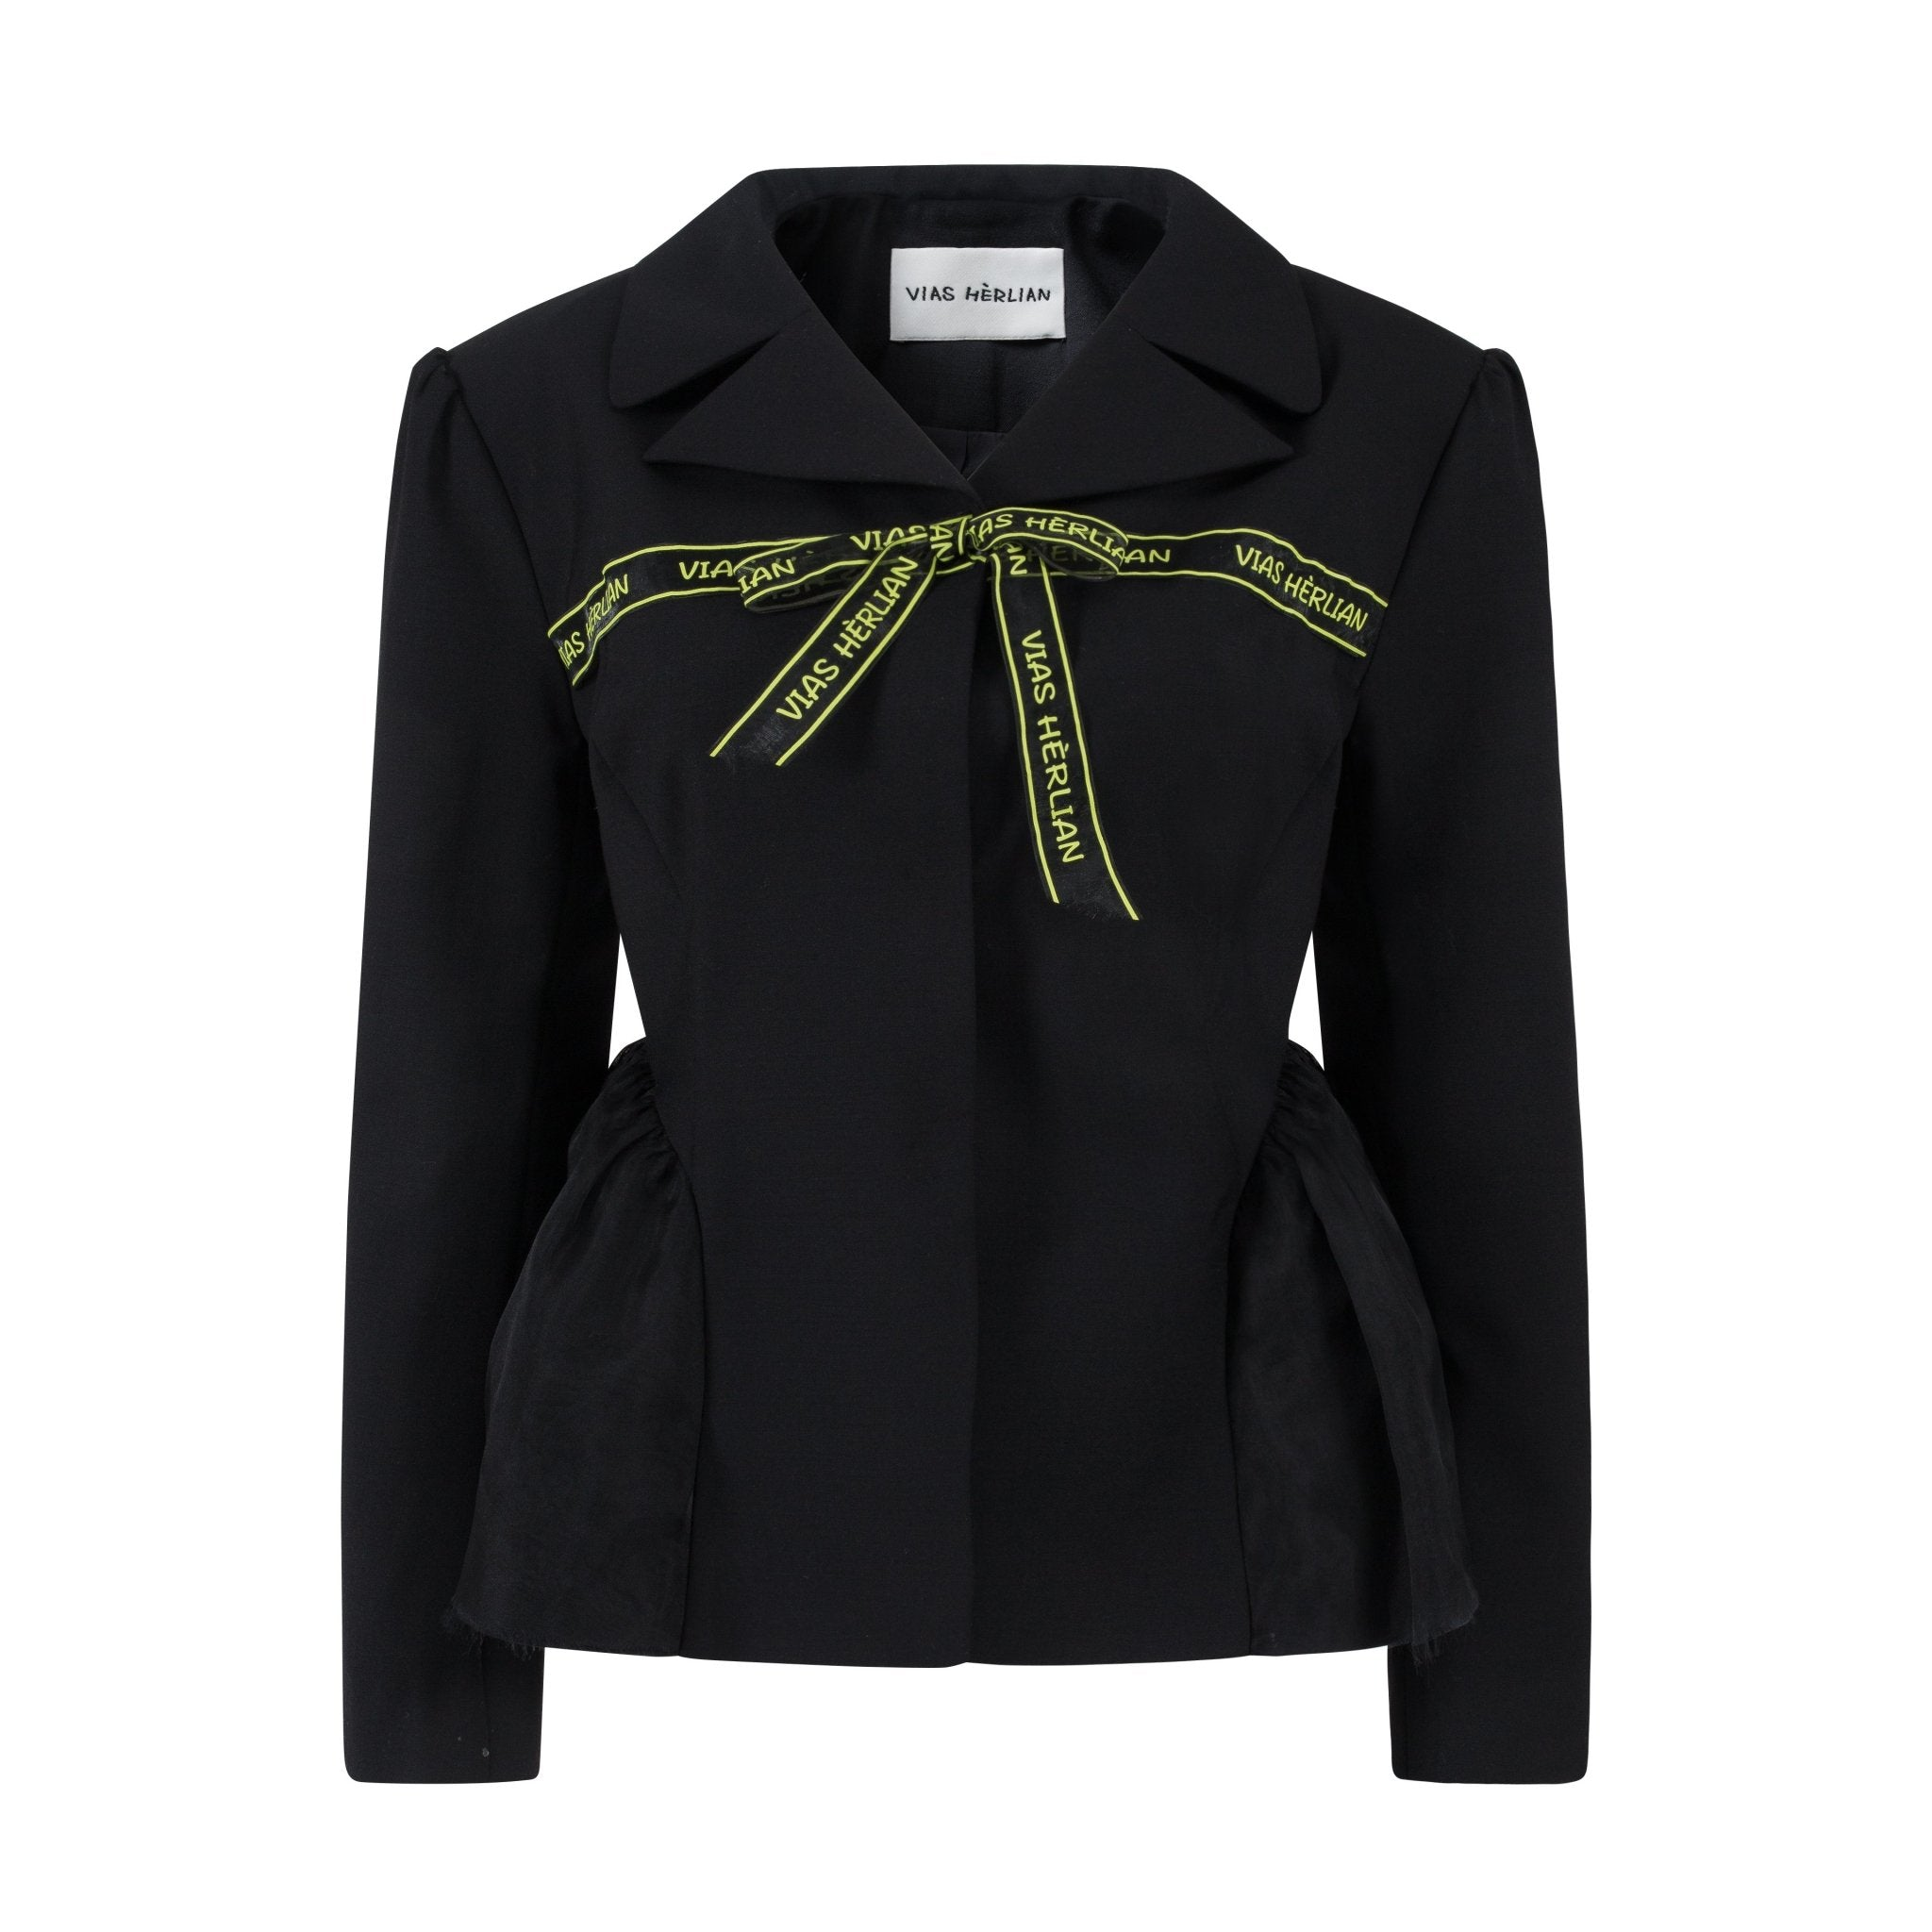 VIAS HERLIAN Black Le Cadeau Bowknot Jacket | MADA IN CHINA